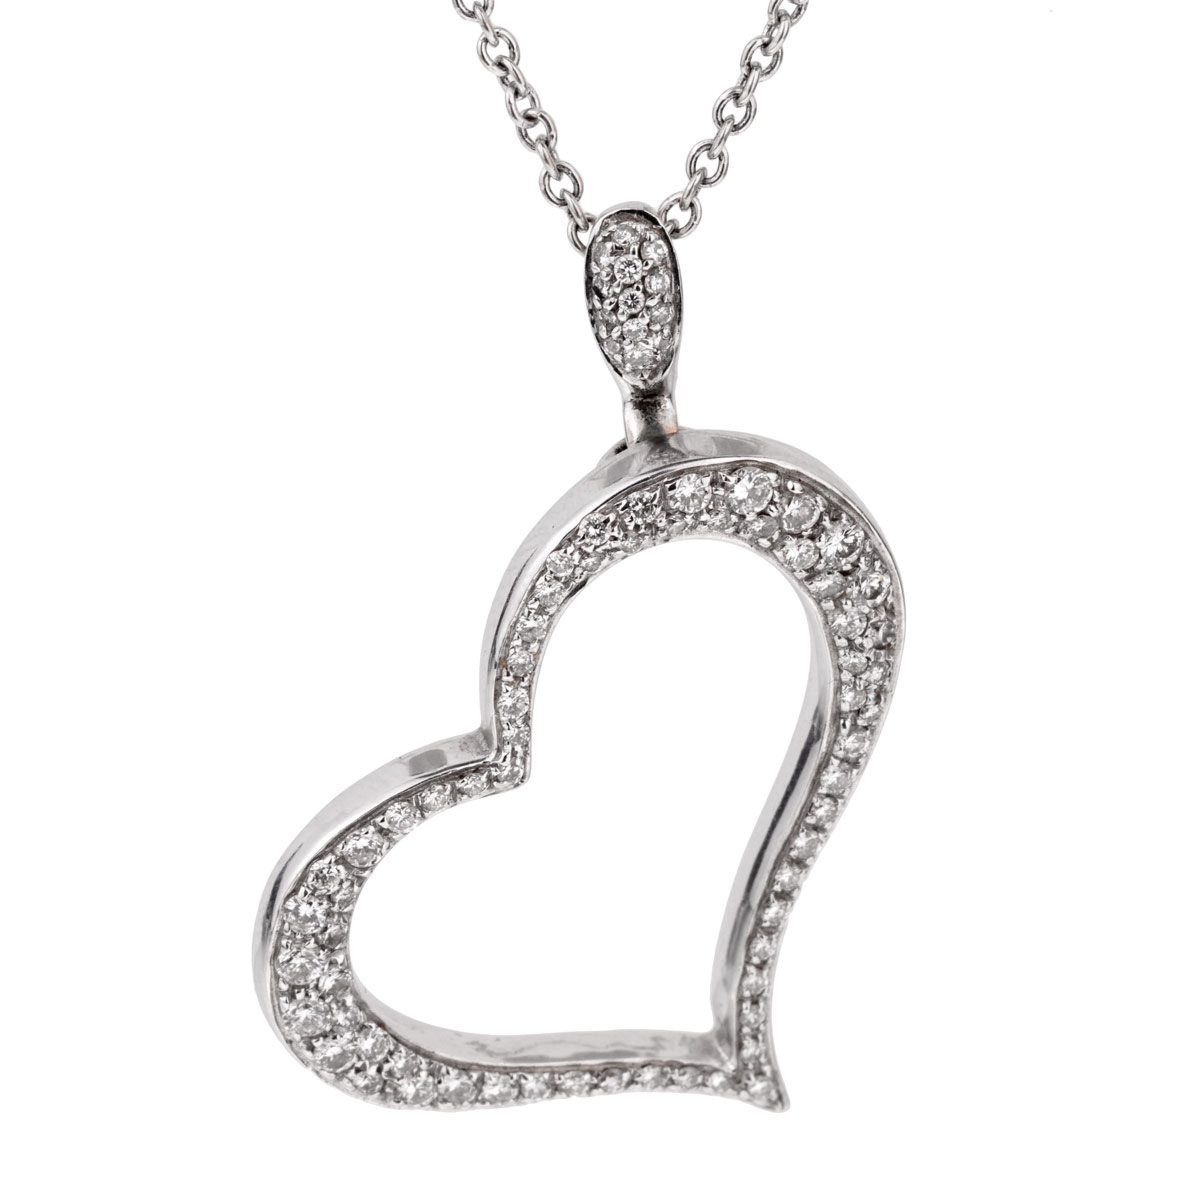 Piaget Diamond Heart White Gold Necklace - Piaget Jewelry